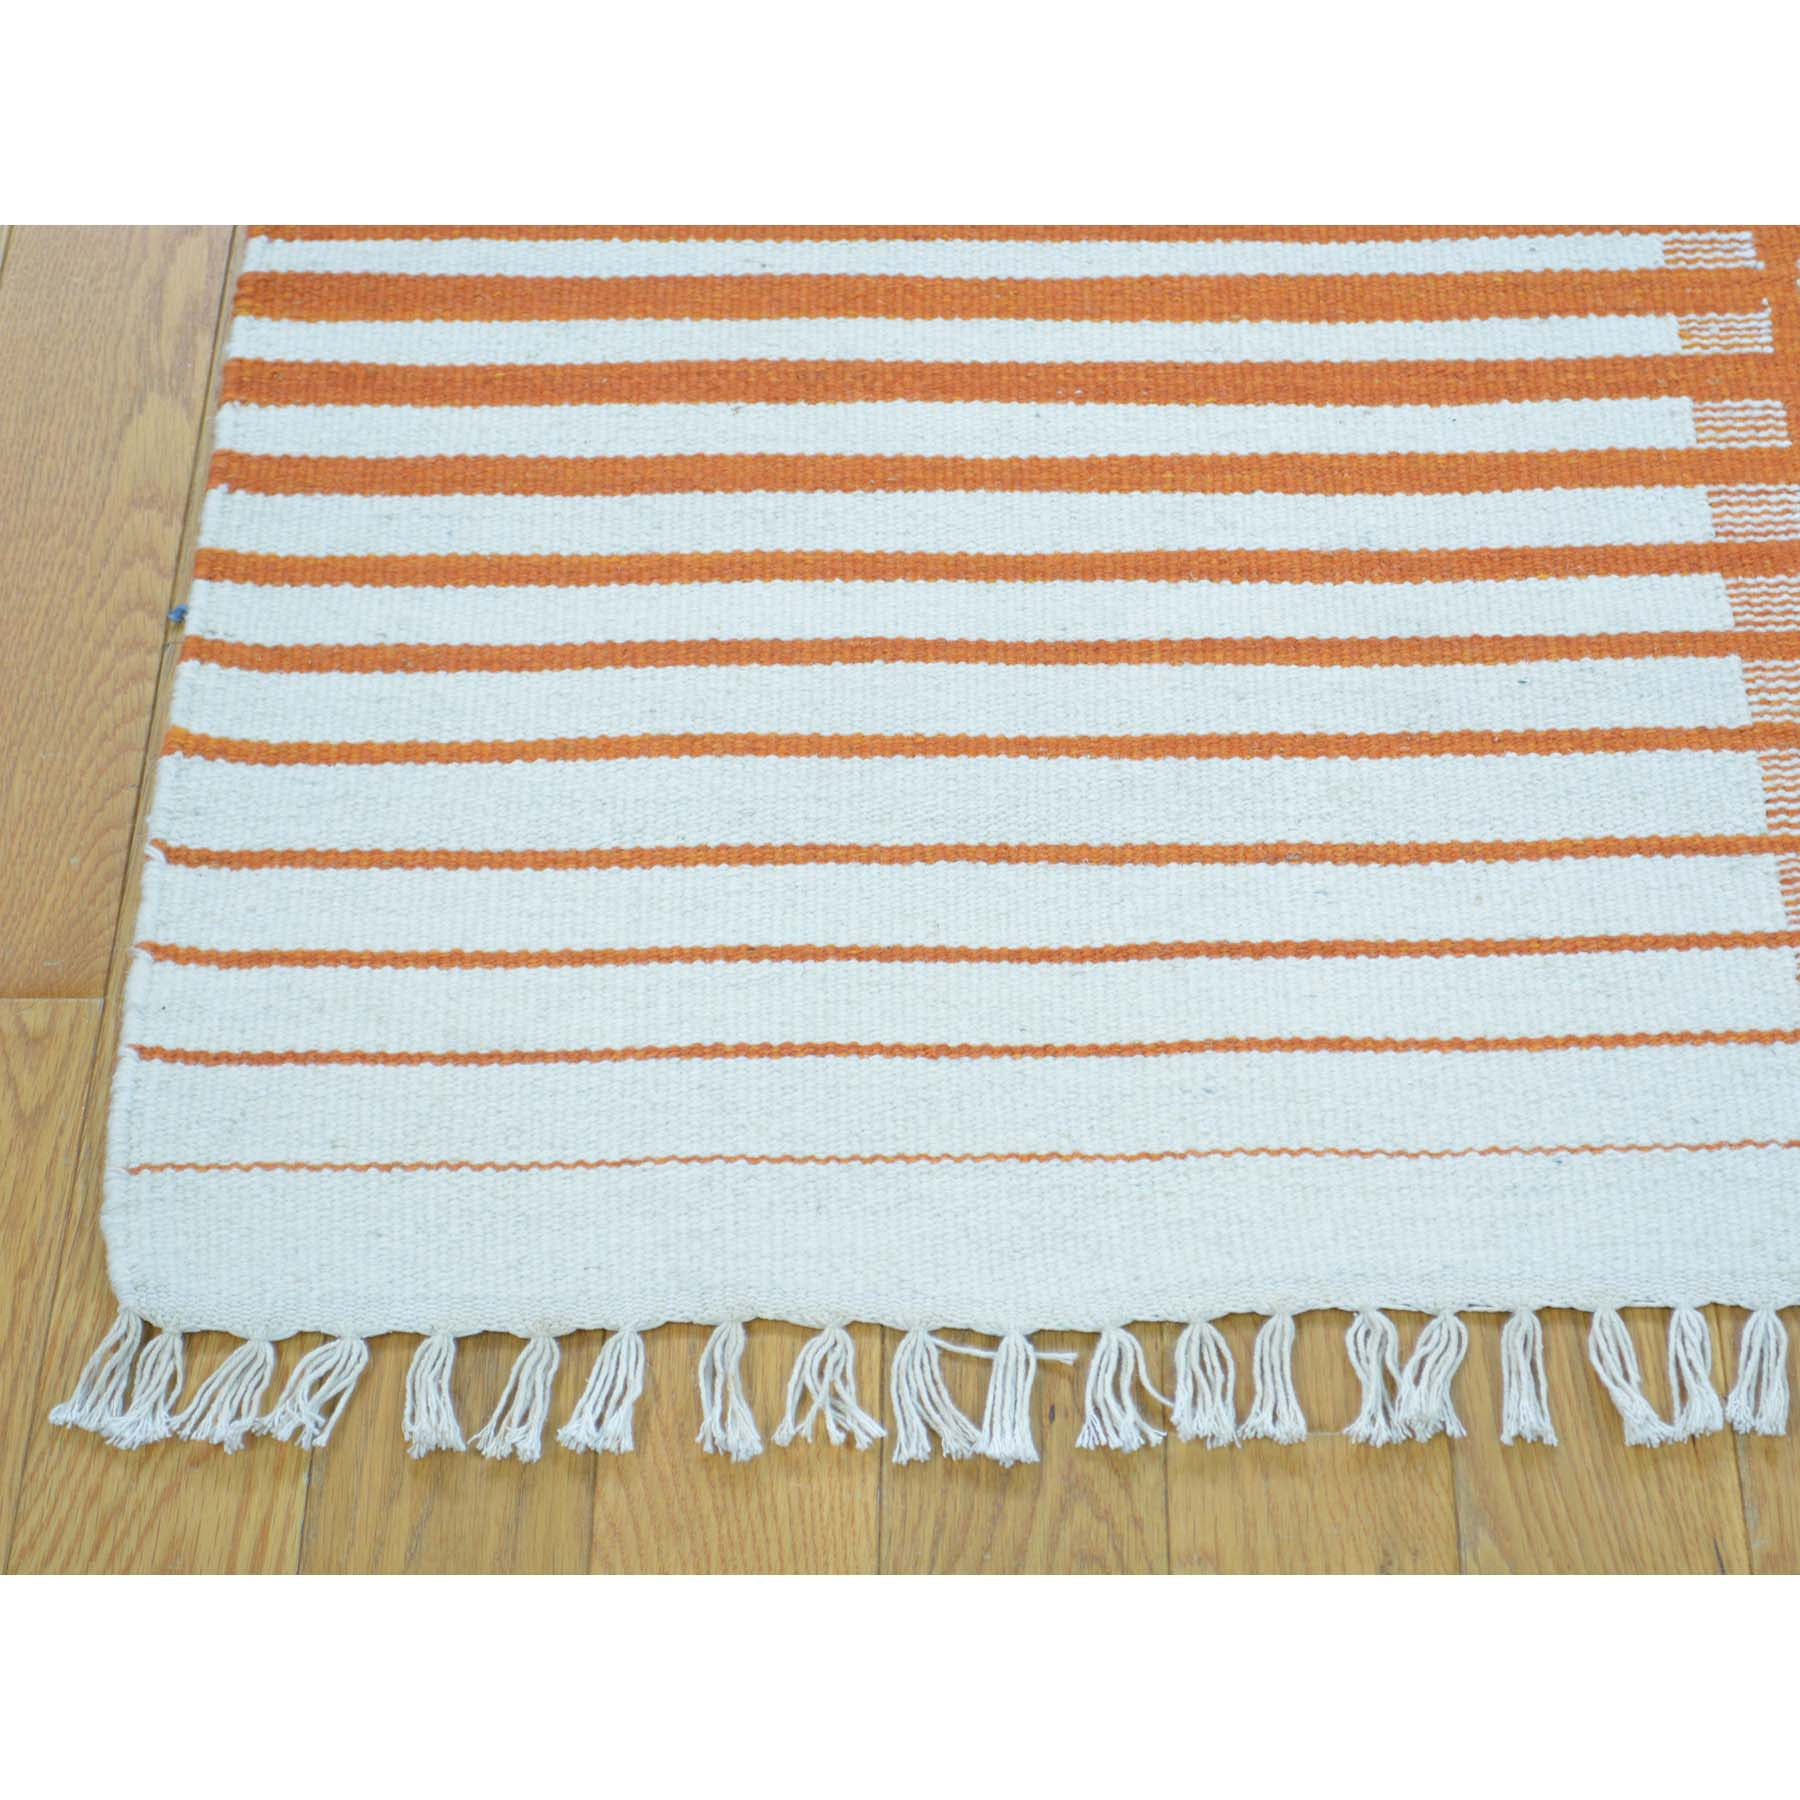 "Handmade Flat Weave Rectangle Rug > Design# SH30052 > Size: 5'-4"" x 7'-8"" [ONLINE ONLY]"